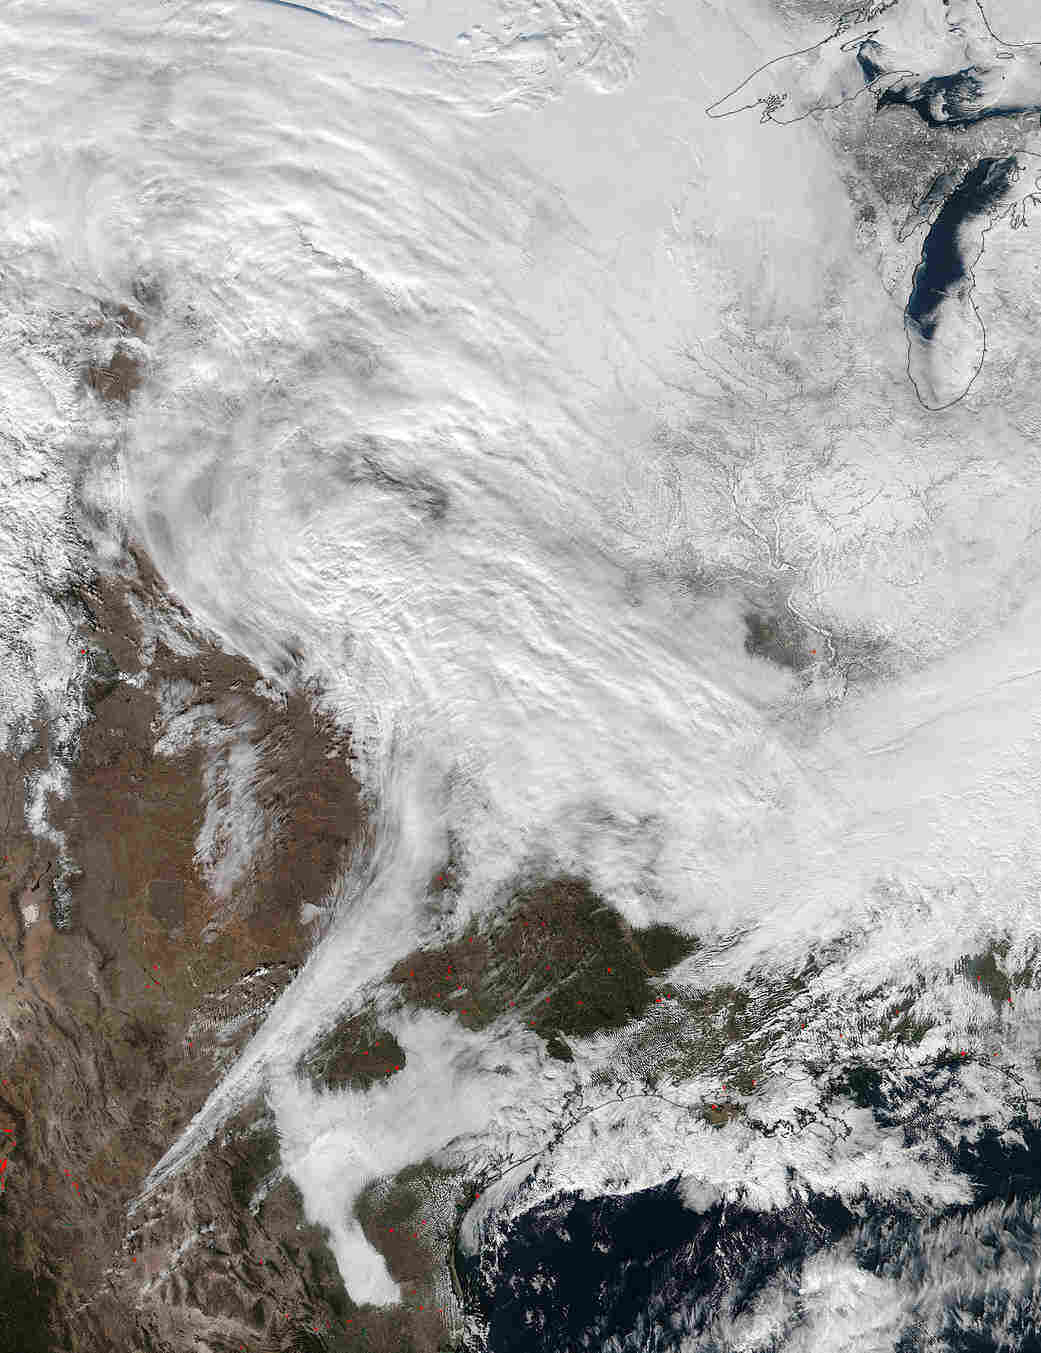 NASA's image of the day Thursday showed the storm on Wednesday, when it was still building over the central U.S. The storm system started in the Pacific ocean, tracked across the U.S. to the Gulf Coast and then moved toward the Mid-Atlantic region.